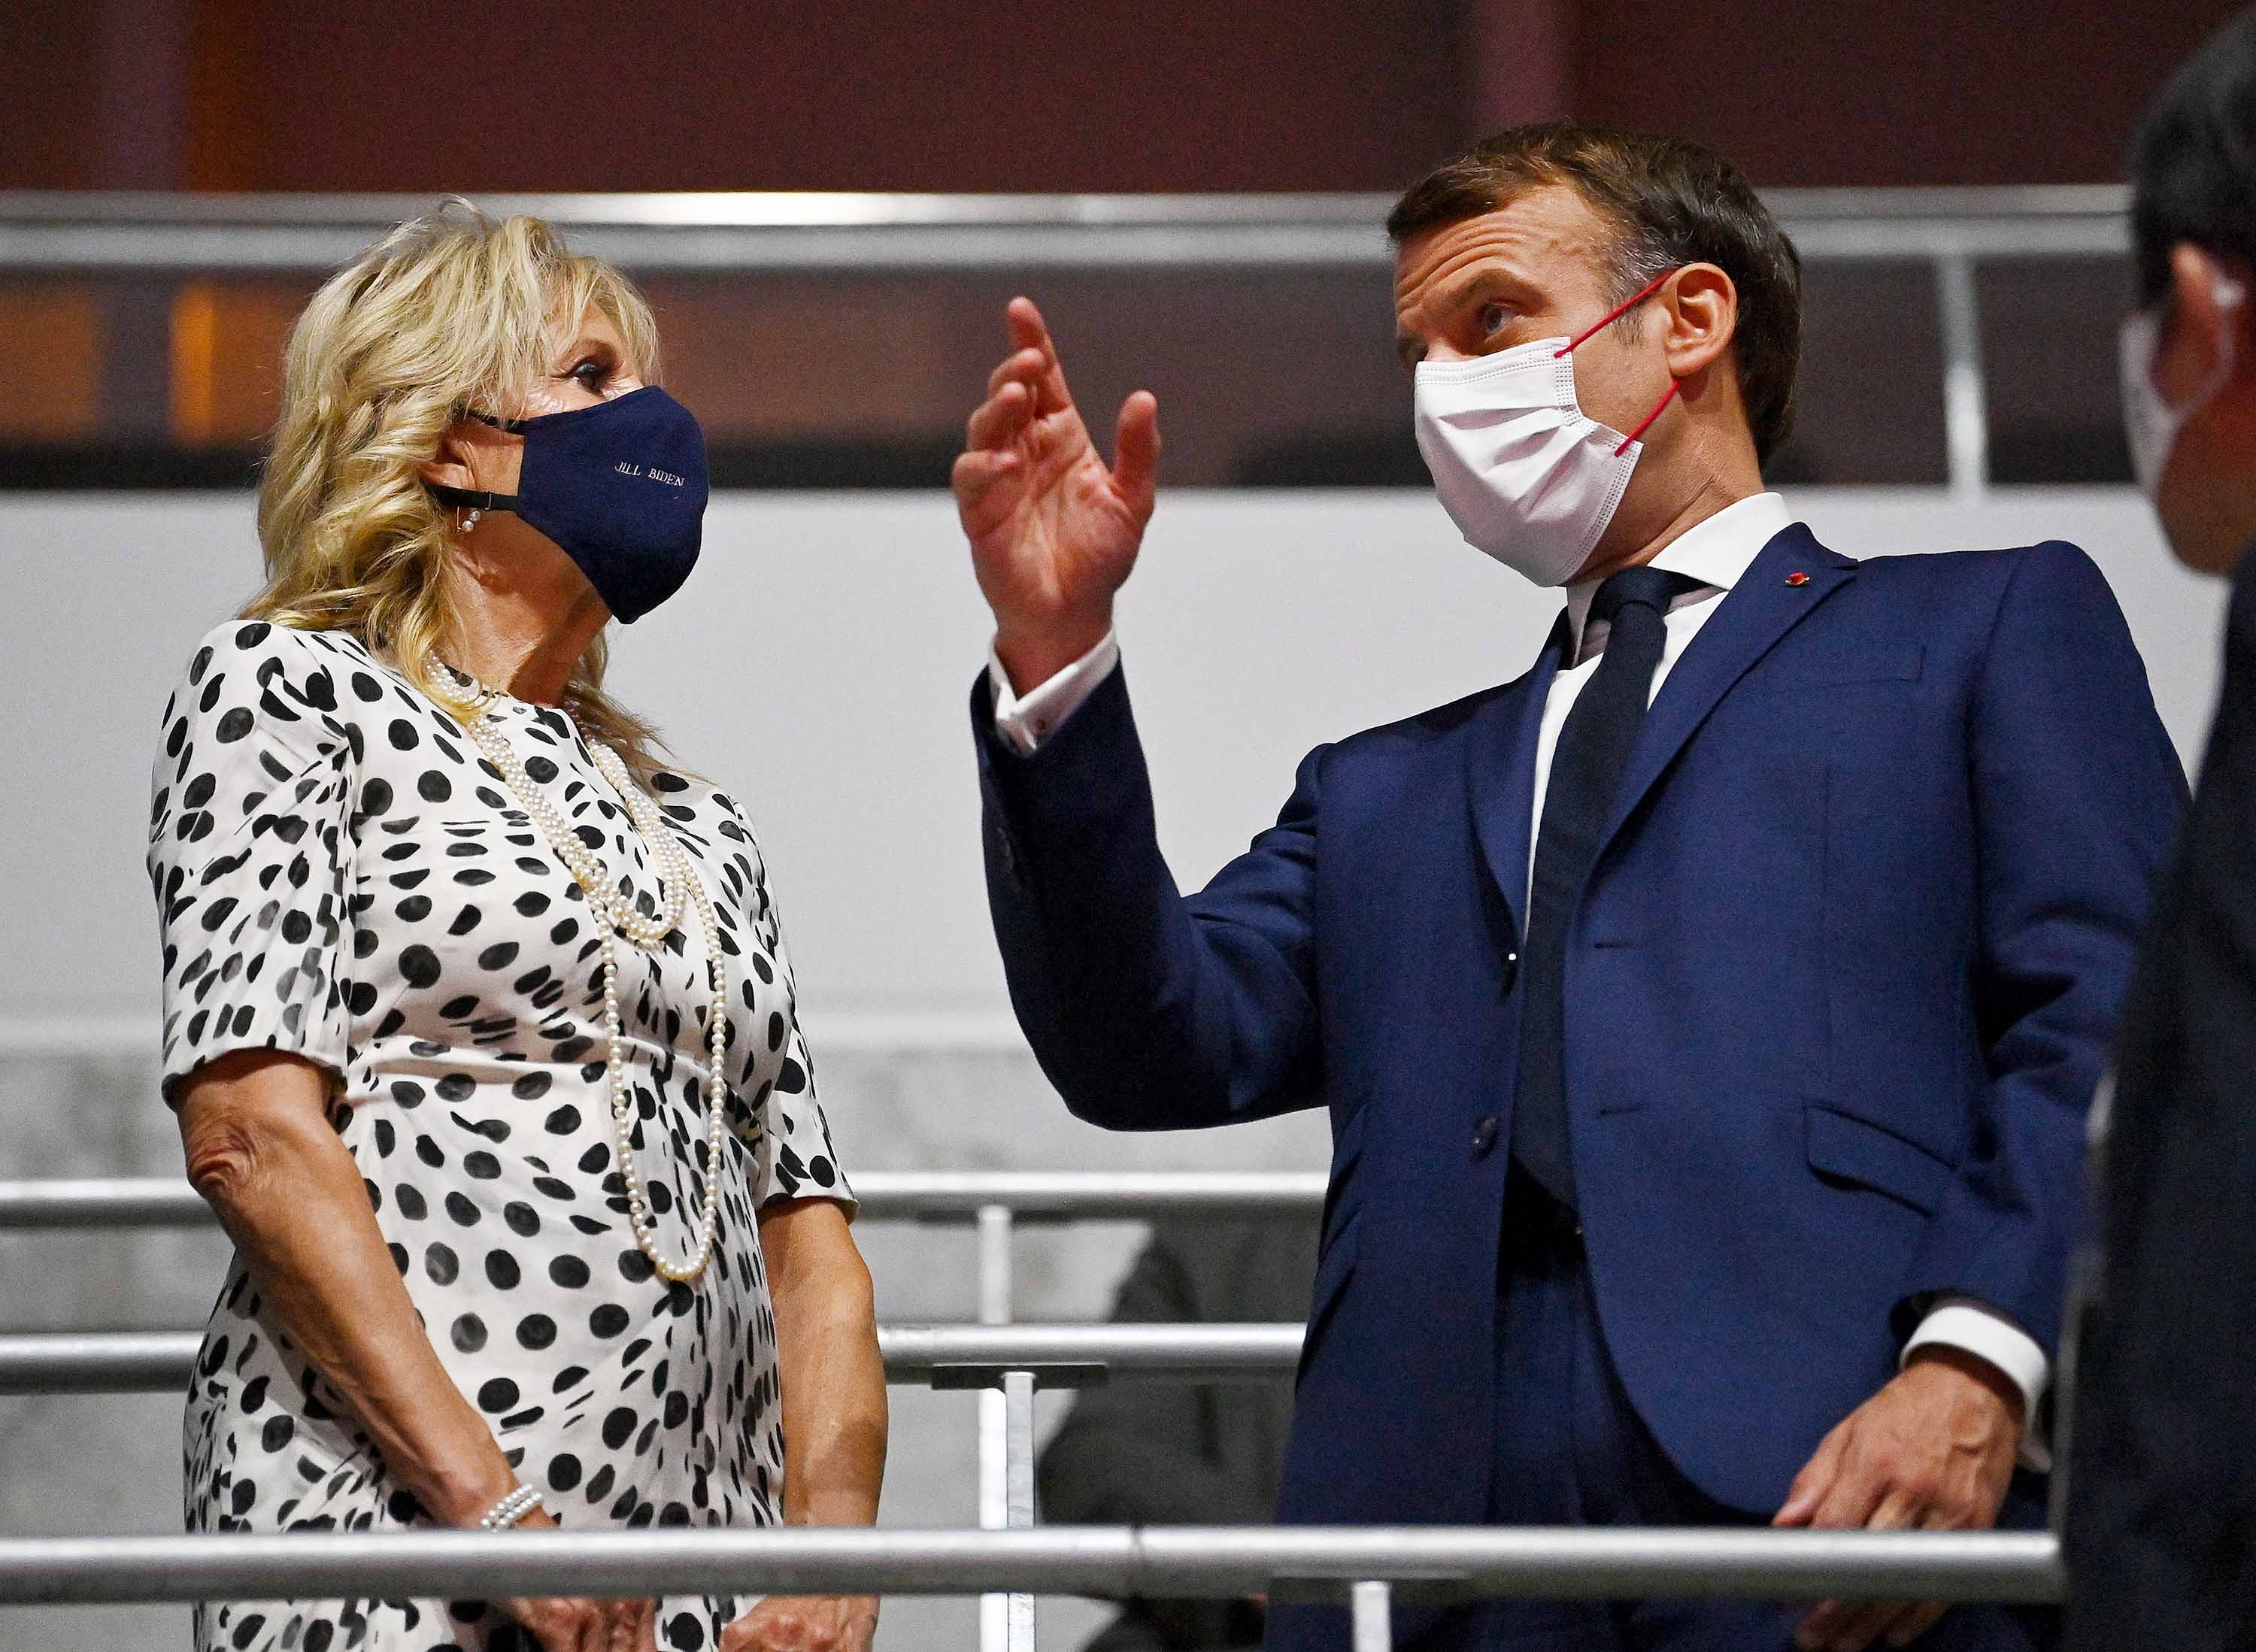 U.S. First Lady, Jill Biden talks with French President Emmanuel Macron ahead of the Opening Ceremony.